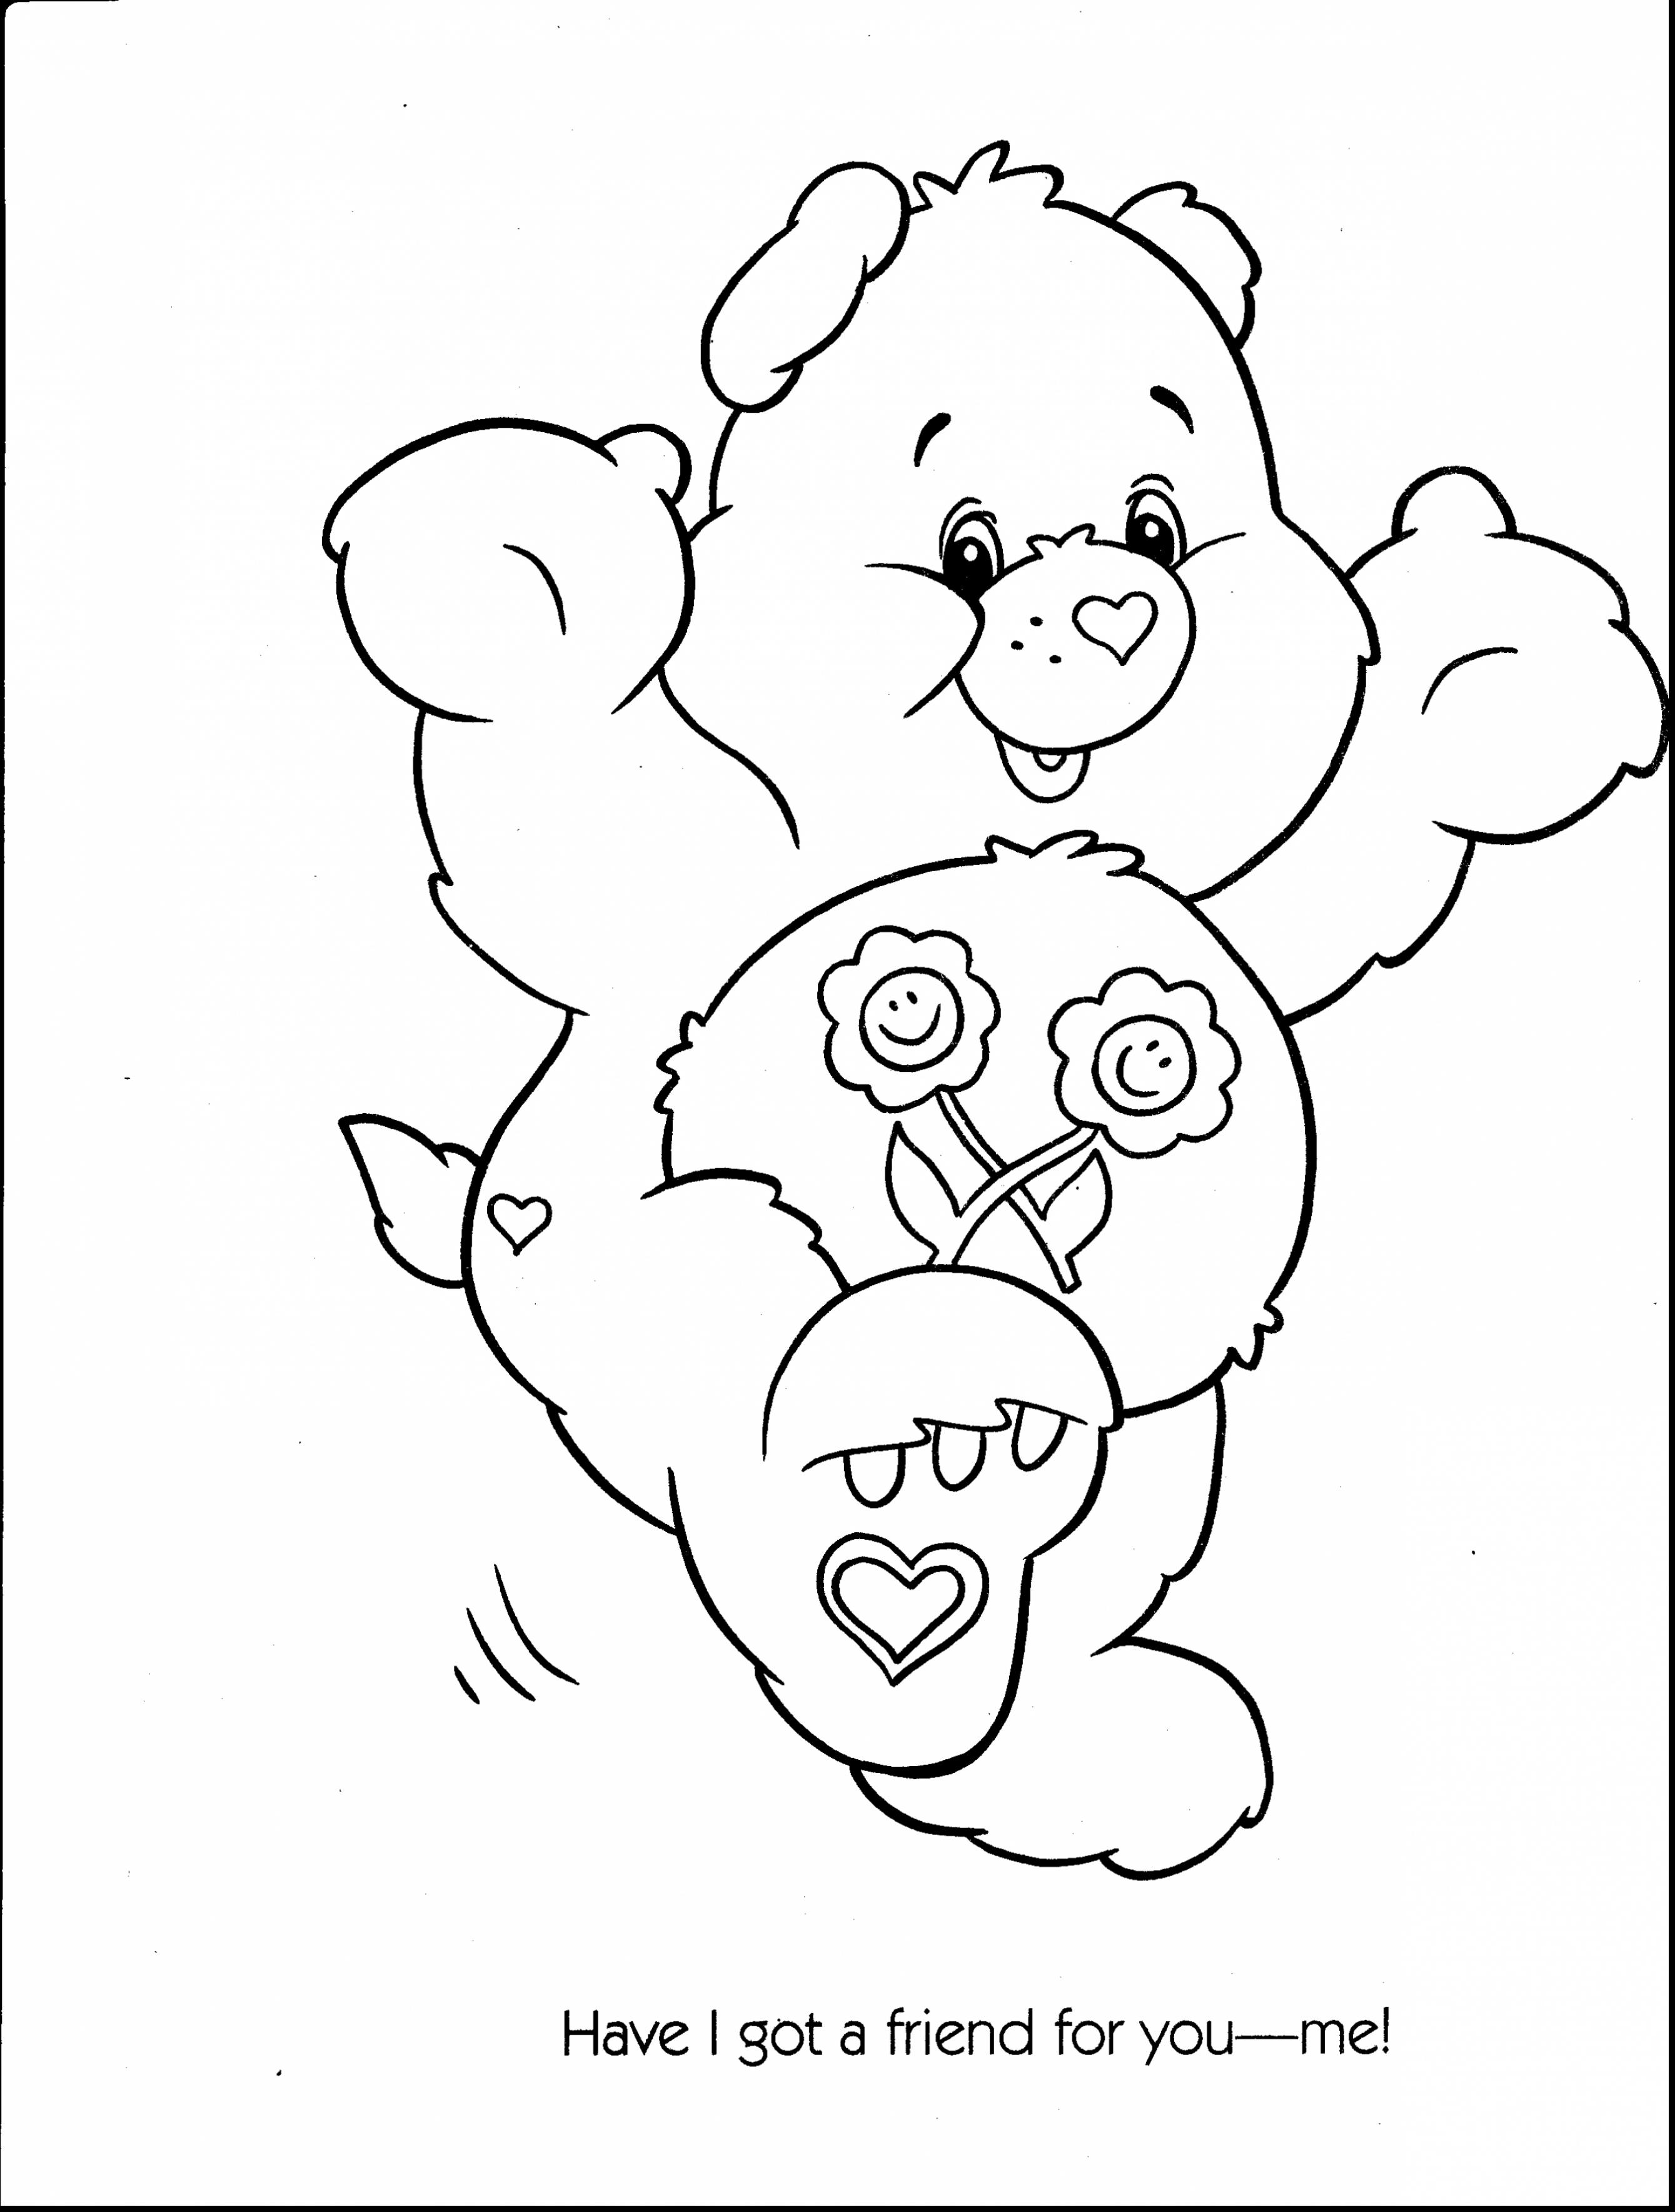 Care Bears Drawing at GetDrawings.com | Free for personal use Care ...